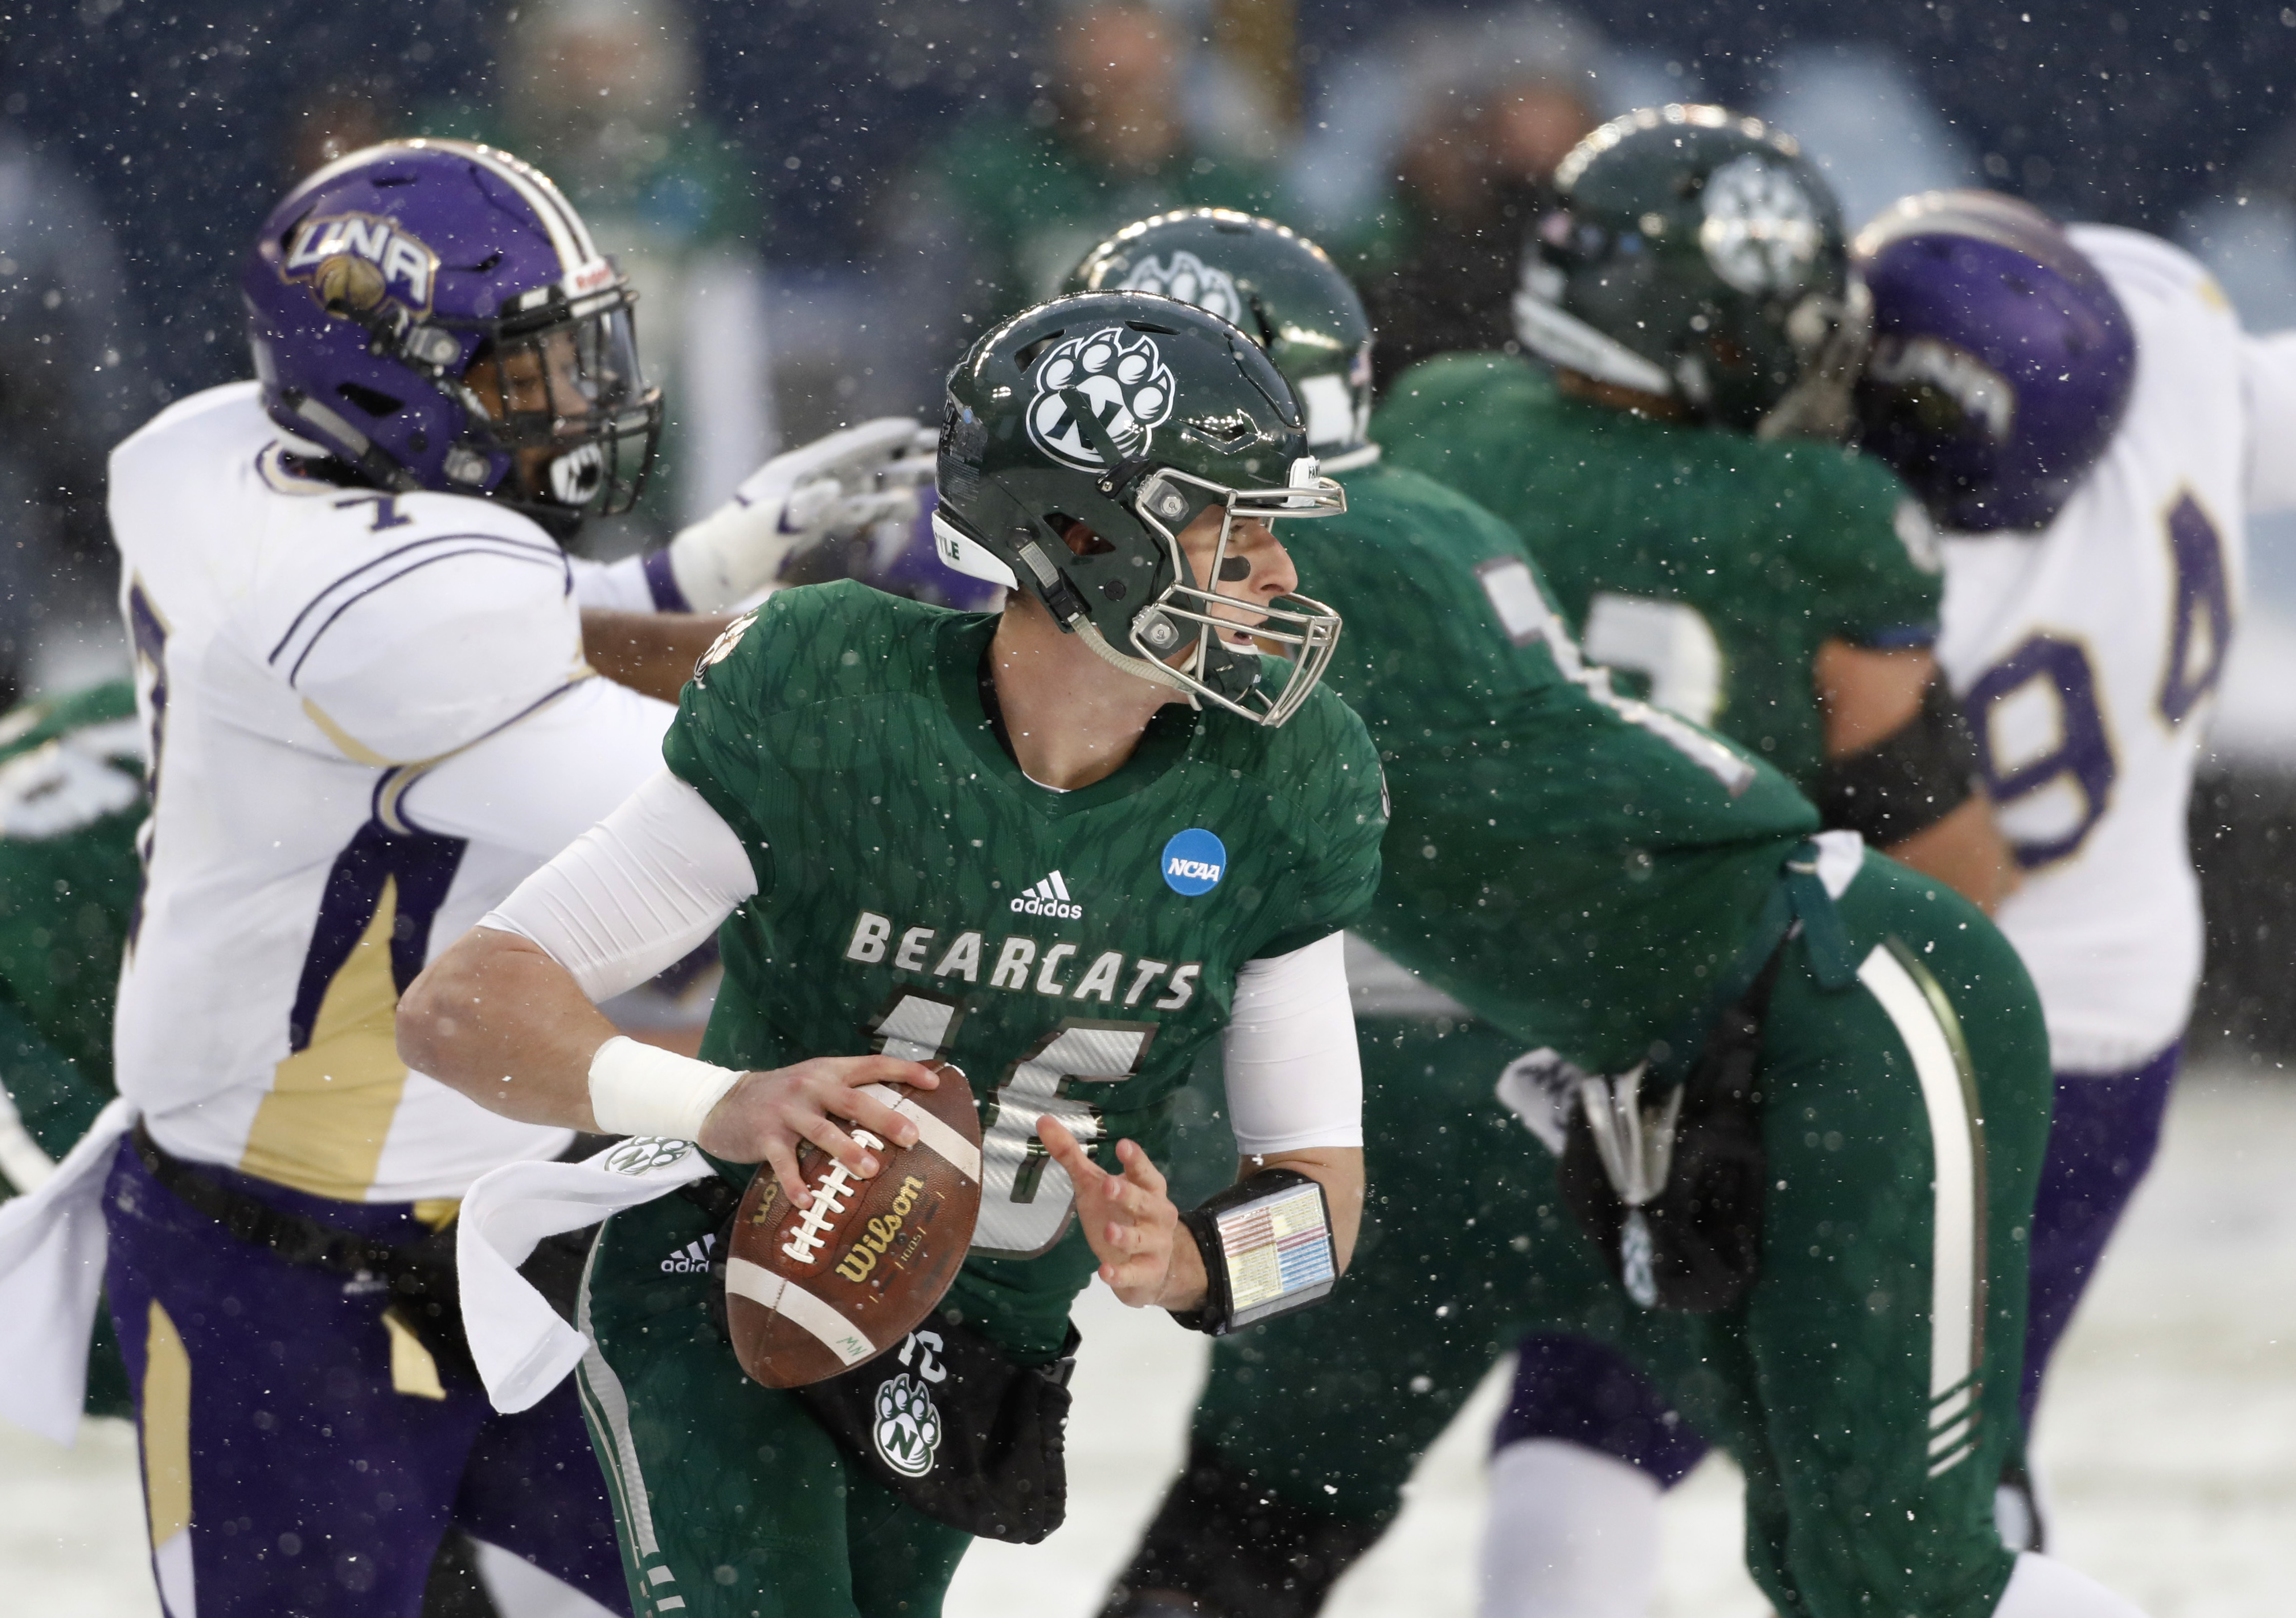 Northwest Missouri State quarterback Kyle Zimmerman (16) looks downfield during the first half of the NCAA Division II championship college football game against North Alabama, Saturday, Dec. 17, 2016, in Kansas City, Kan. (AP Photo/Colin E. Braley)